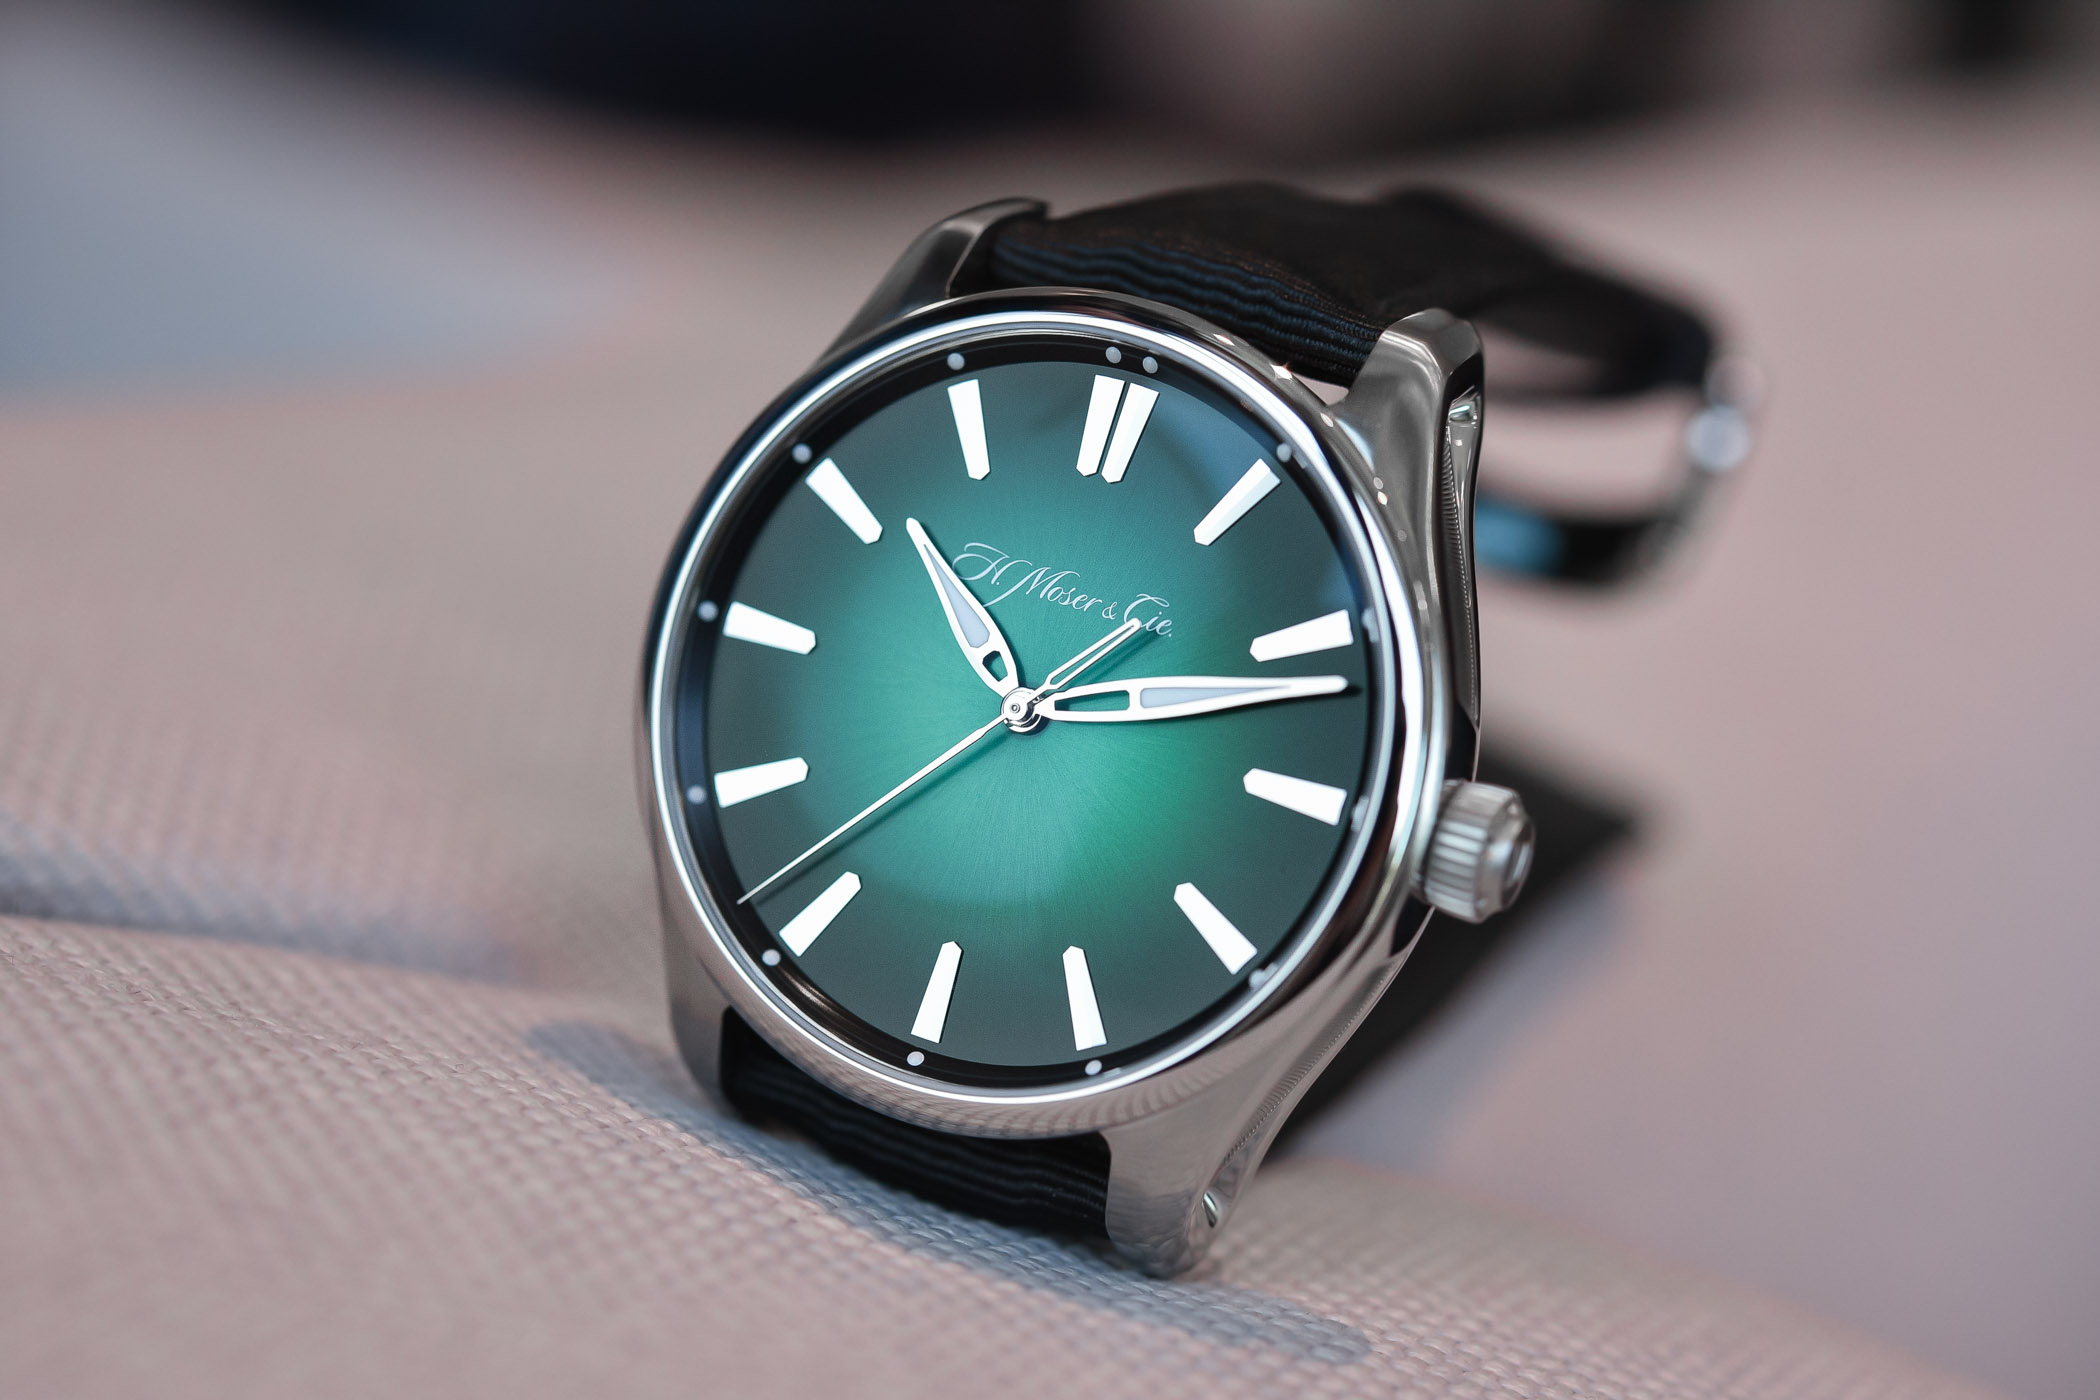 H. Moser Cie Pioneer Centre Seconds Cosmic Green - reference 3200-1202